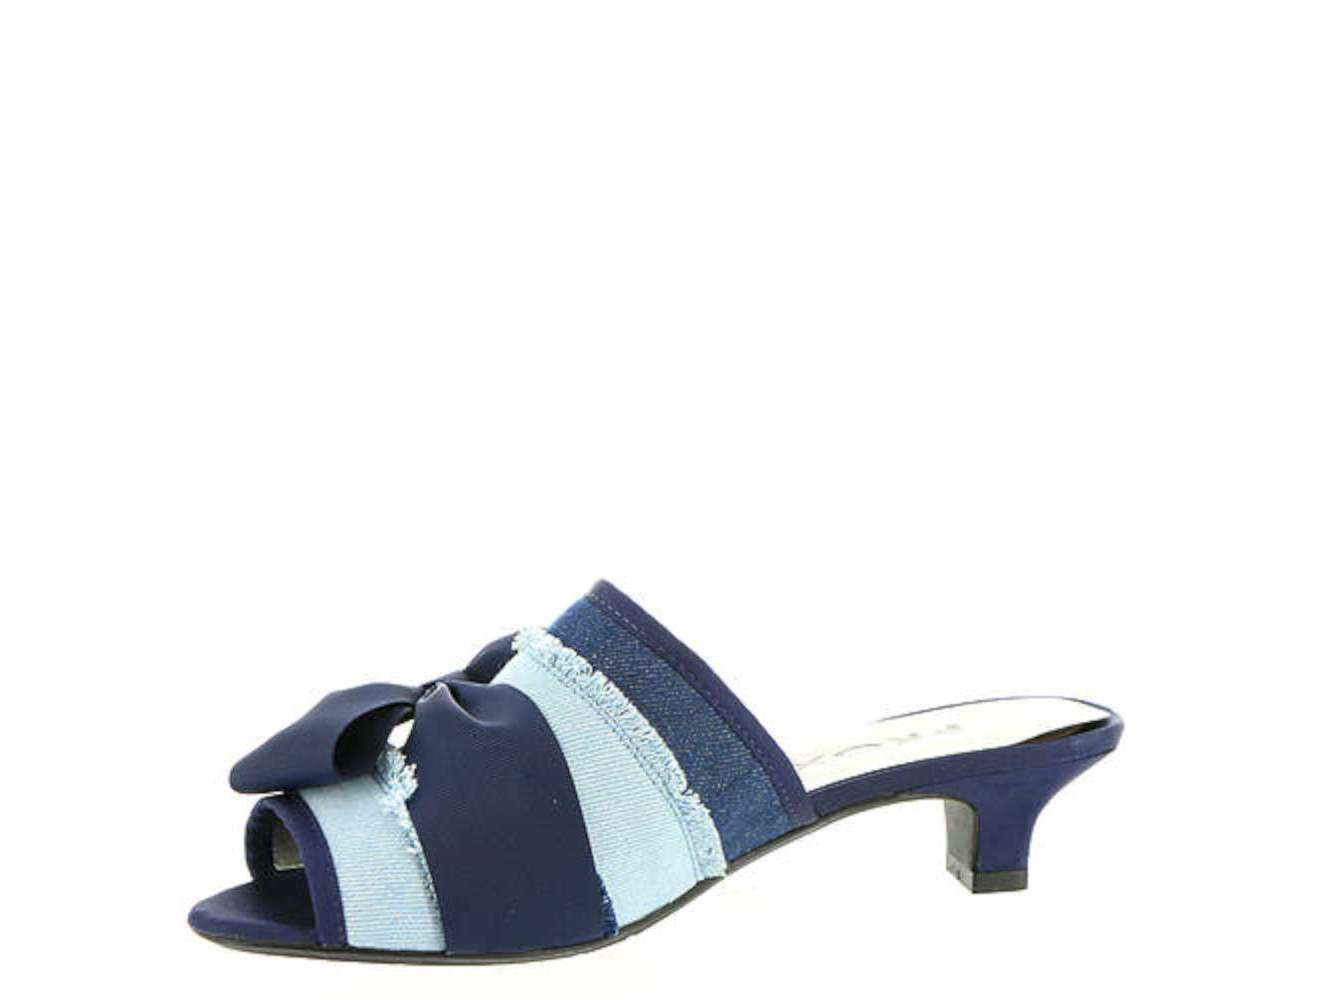 Proxy Womens tiffney Open Toe Casual Slide Sandals, Blue, Size 11.0